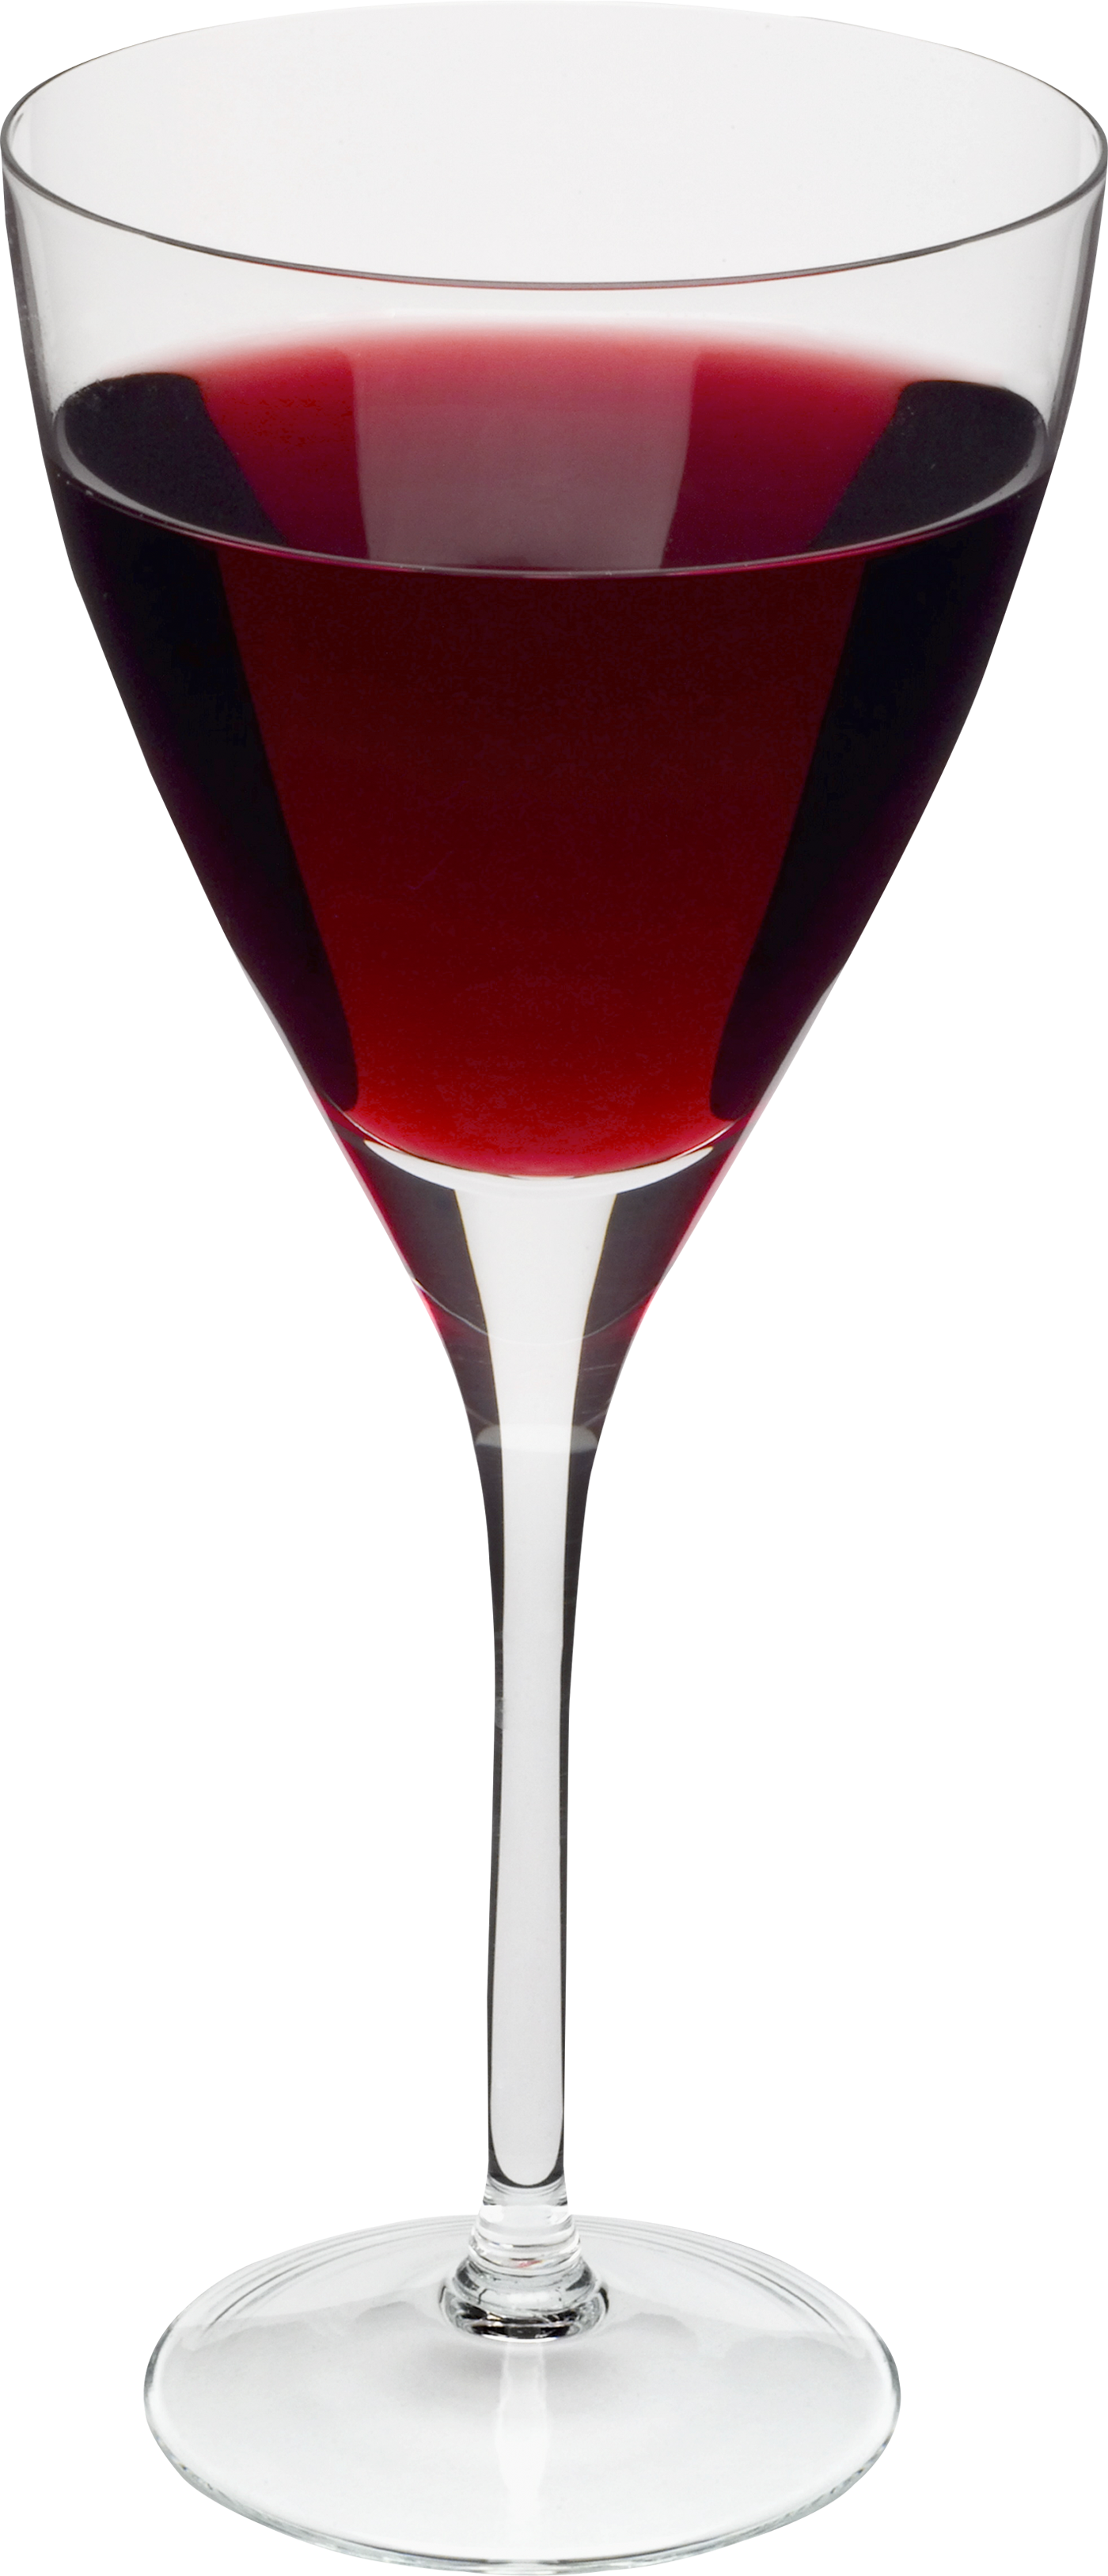 Wine Glass Png Image - Glass Of Wine, Transparent background PNG HD thumbnail